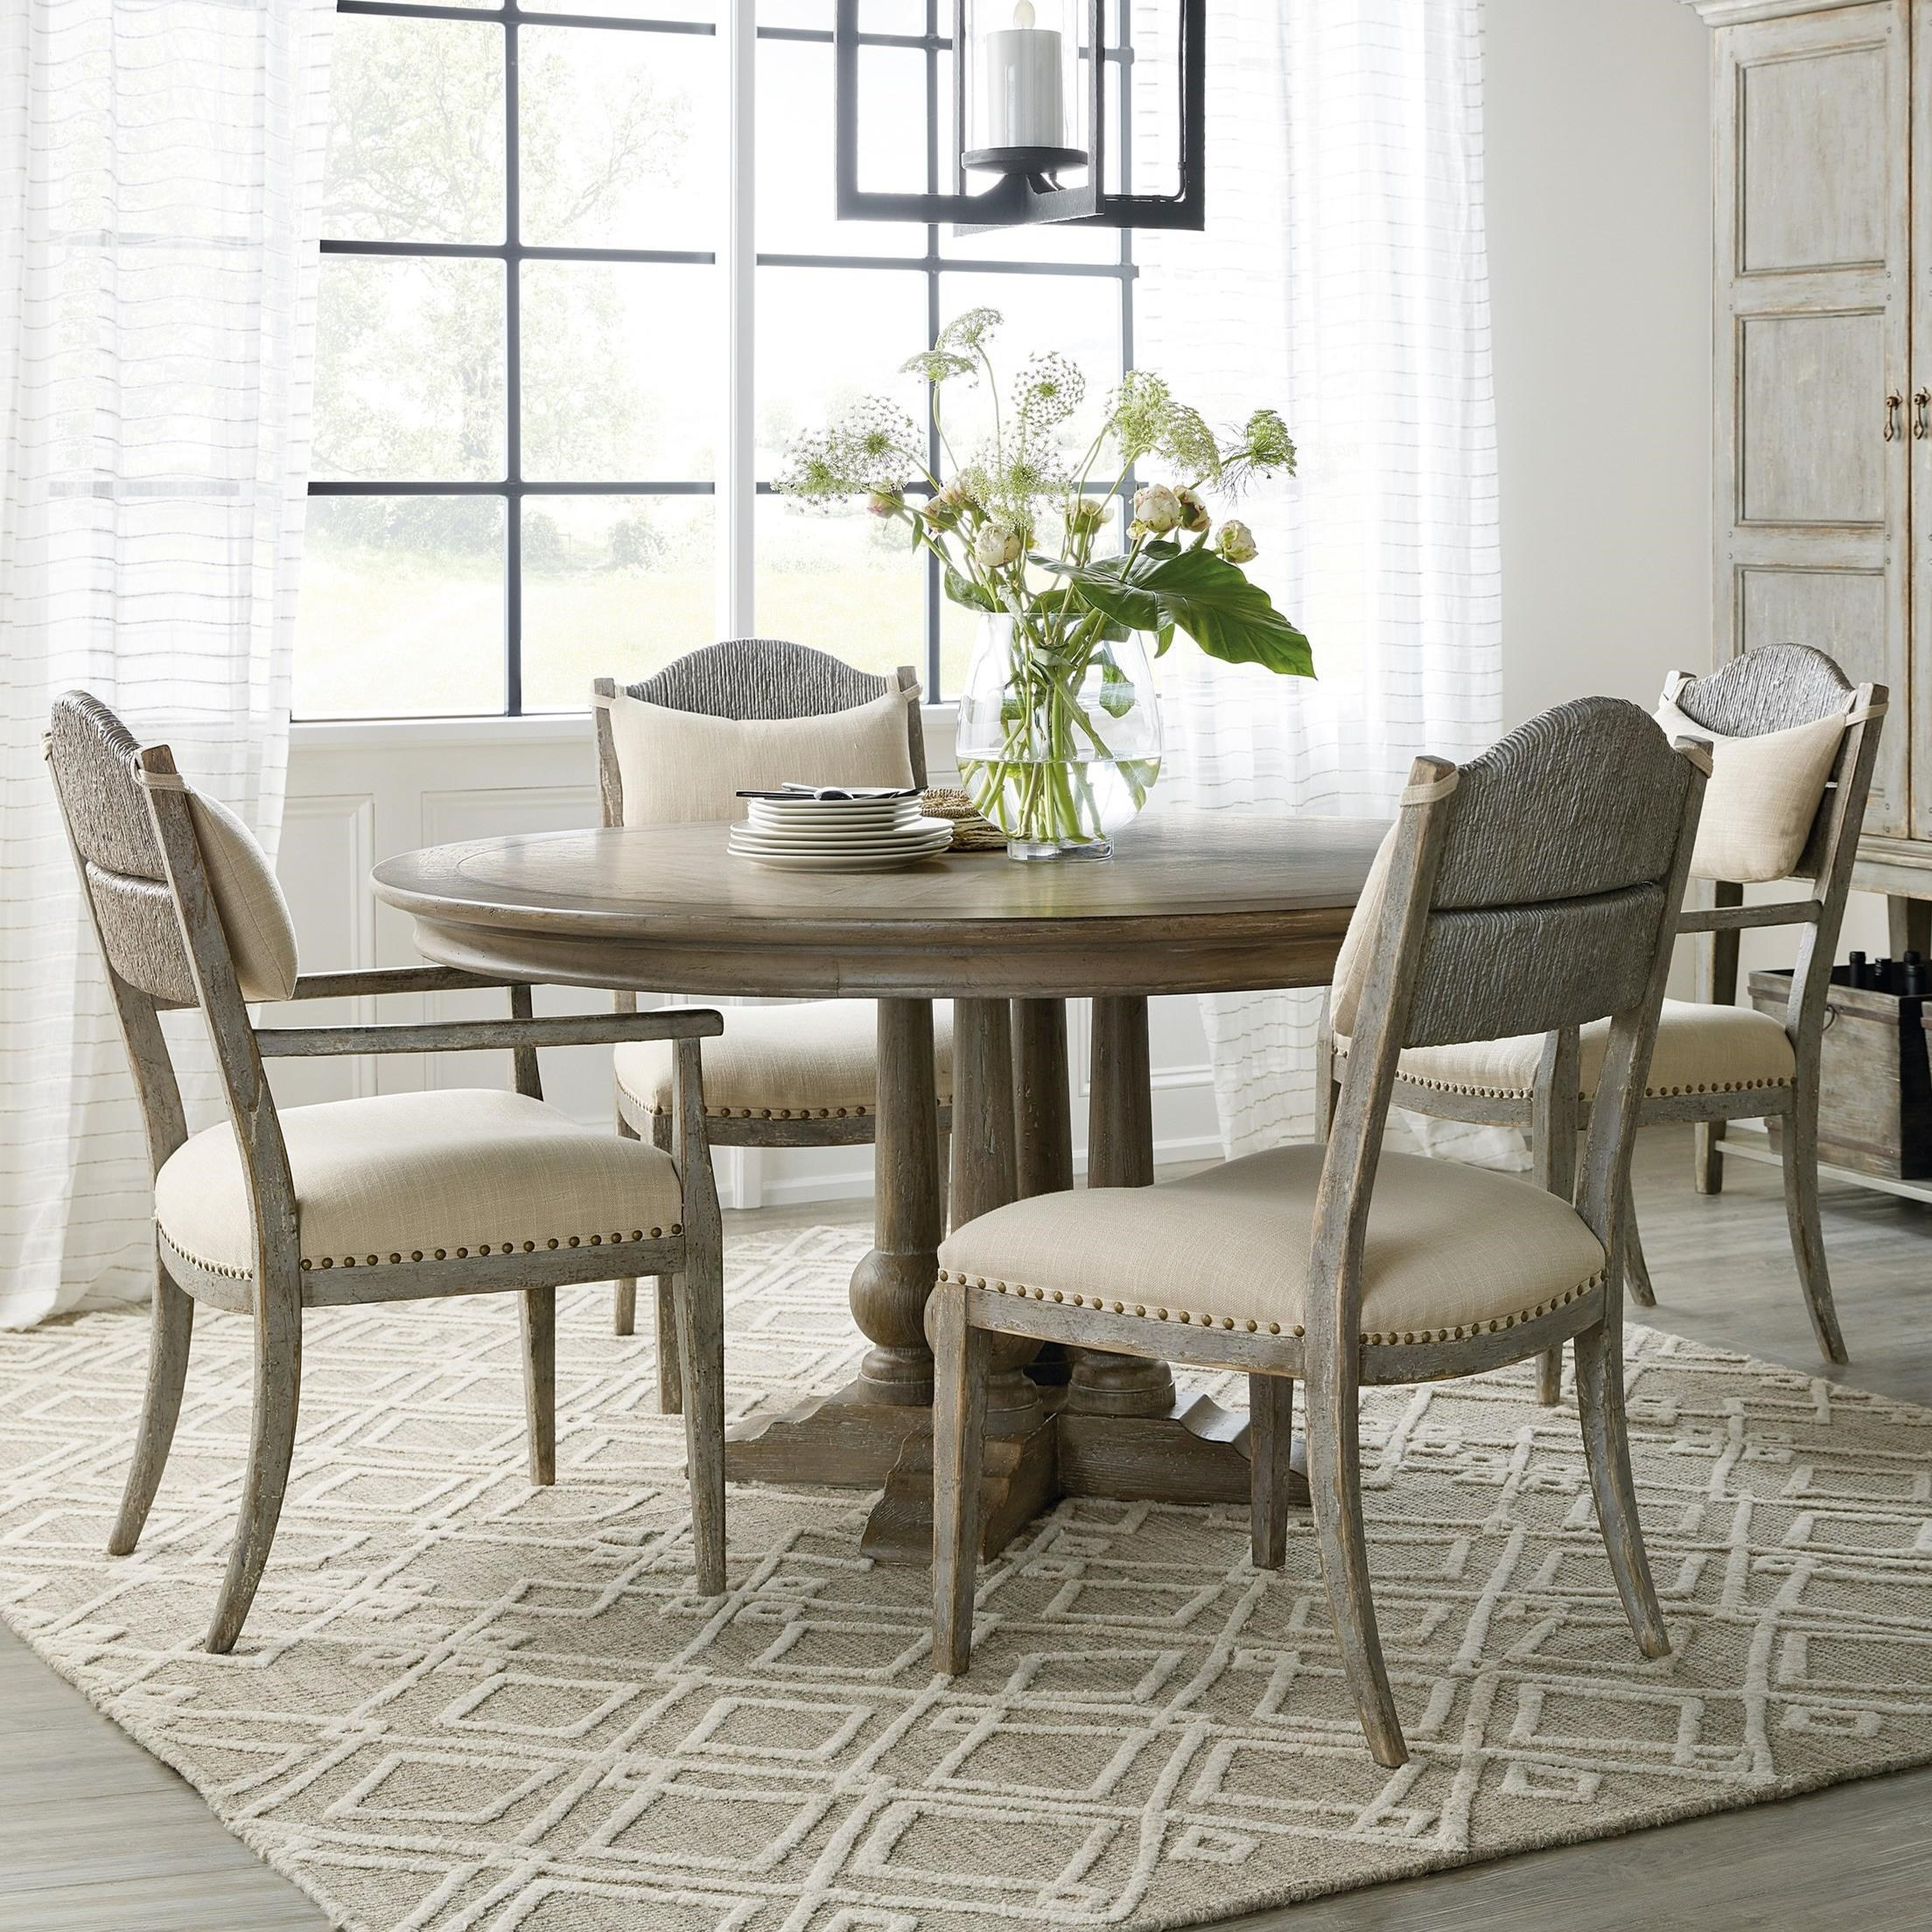 Alfresco 5-Piece Table and Chair Set by Hooker Furniture at Suburban Furniture